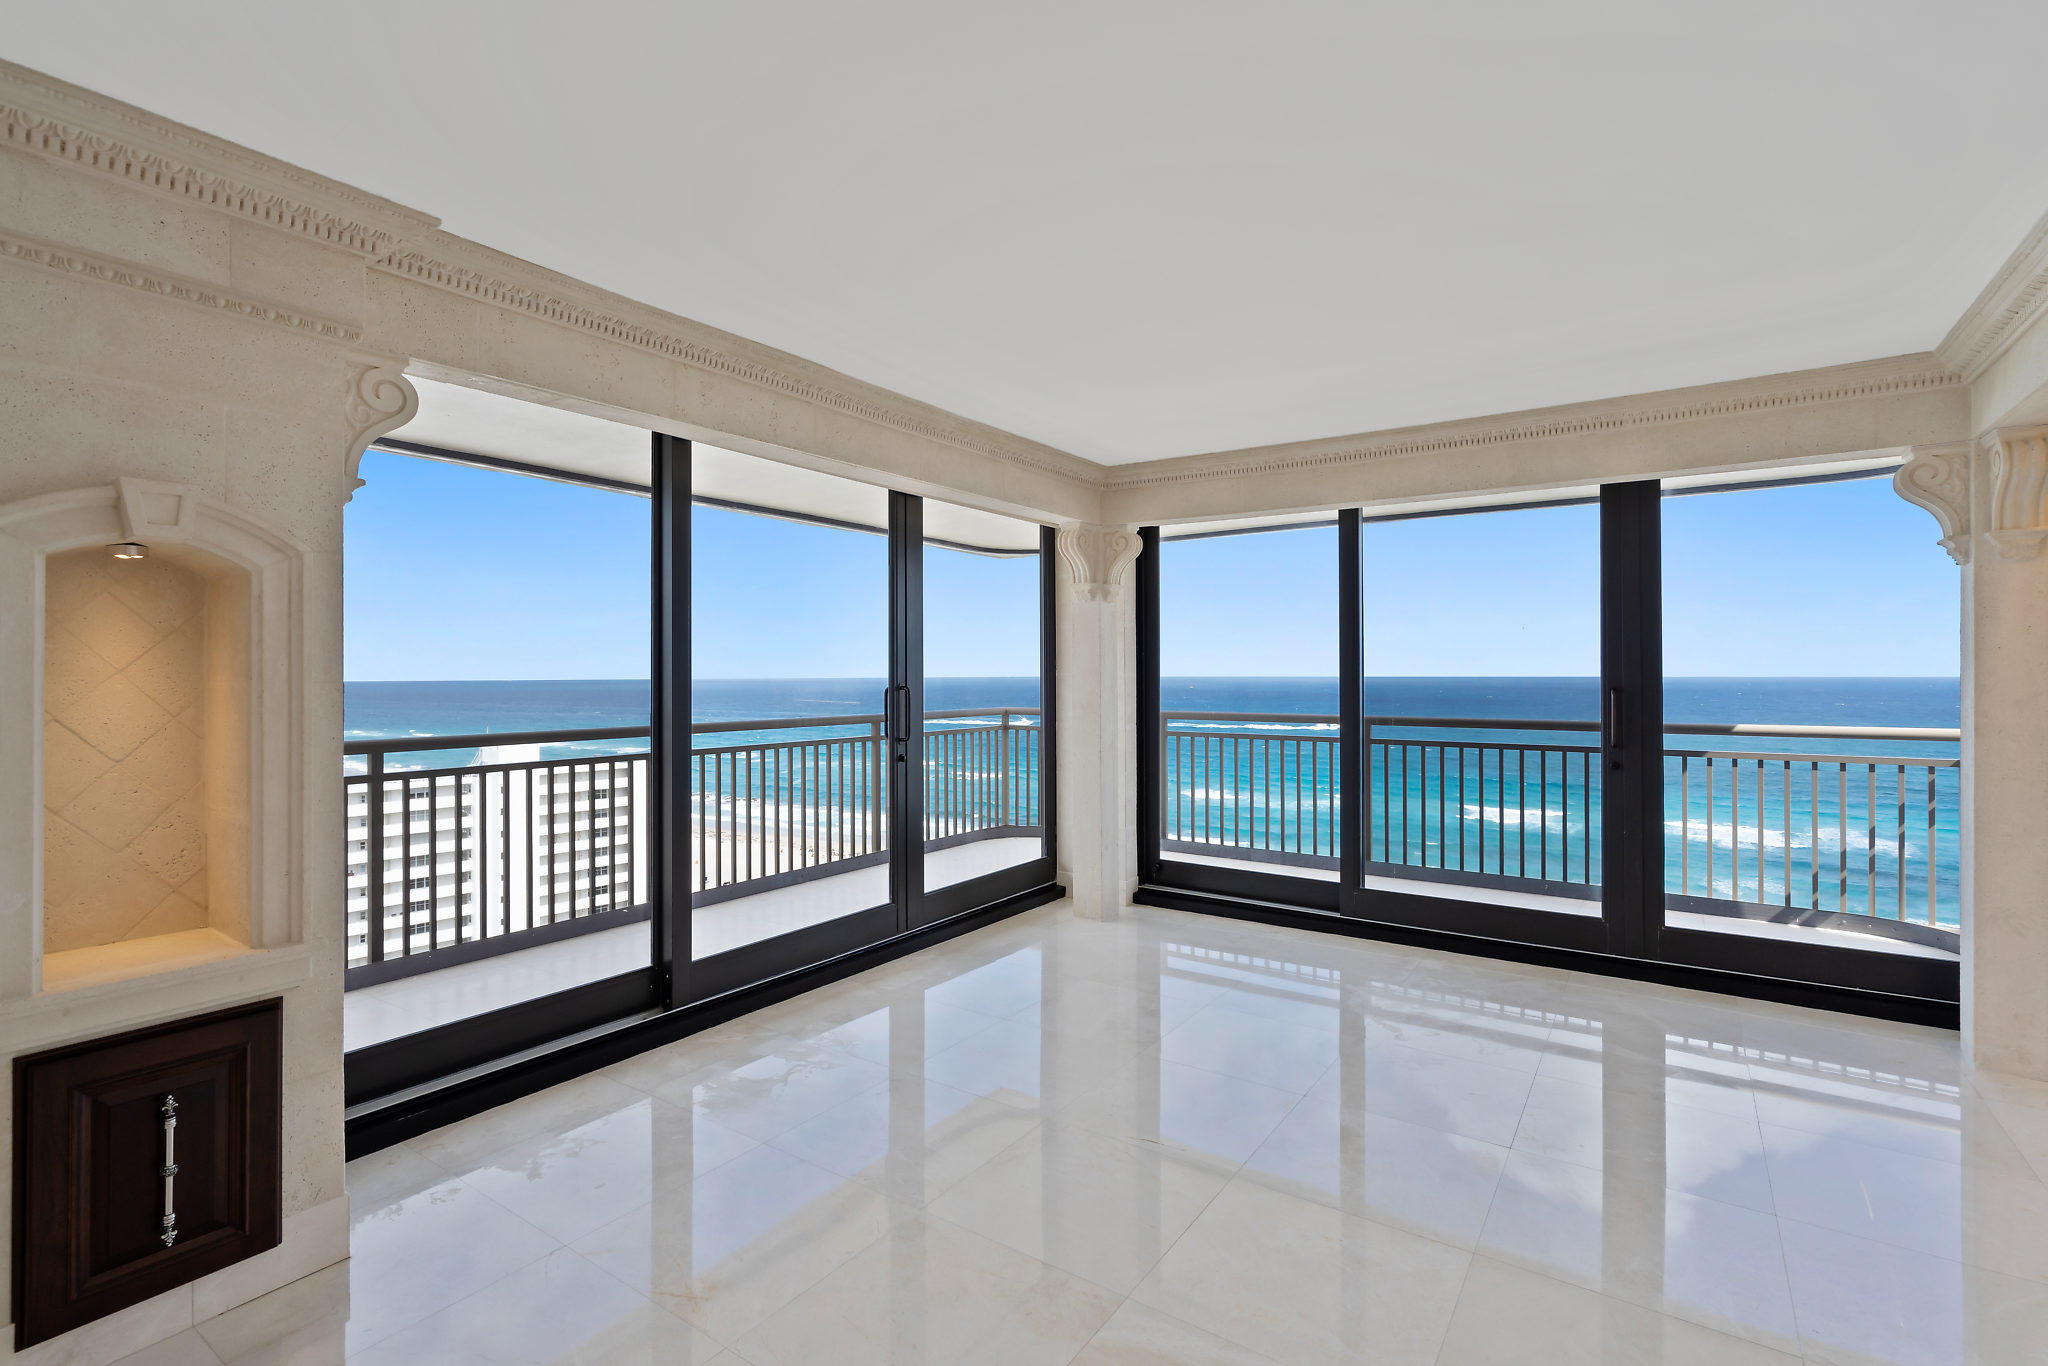 New Home for sale at 3400 Ocean Tree Drive in Singer Island